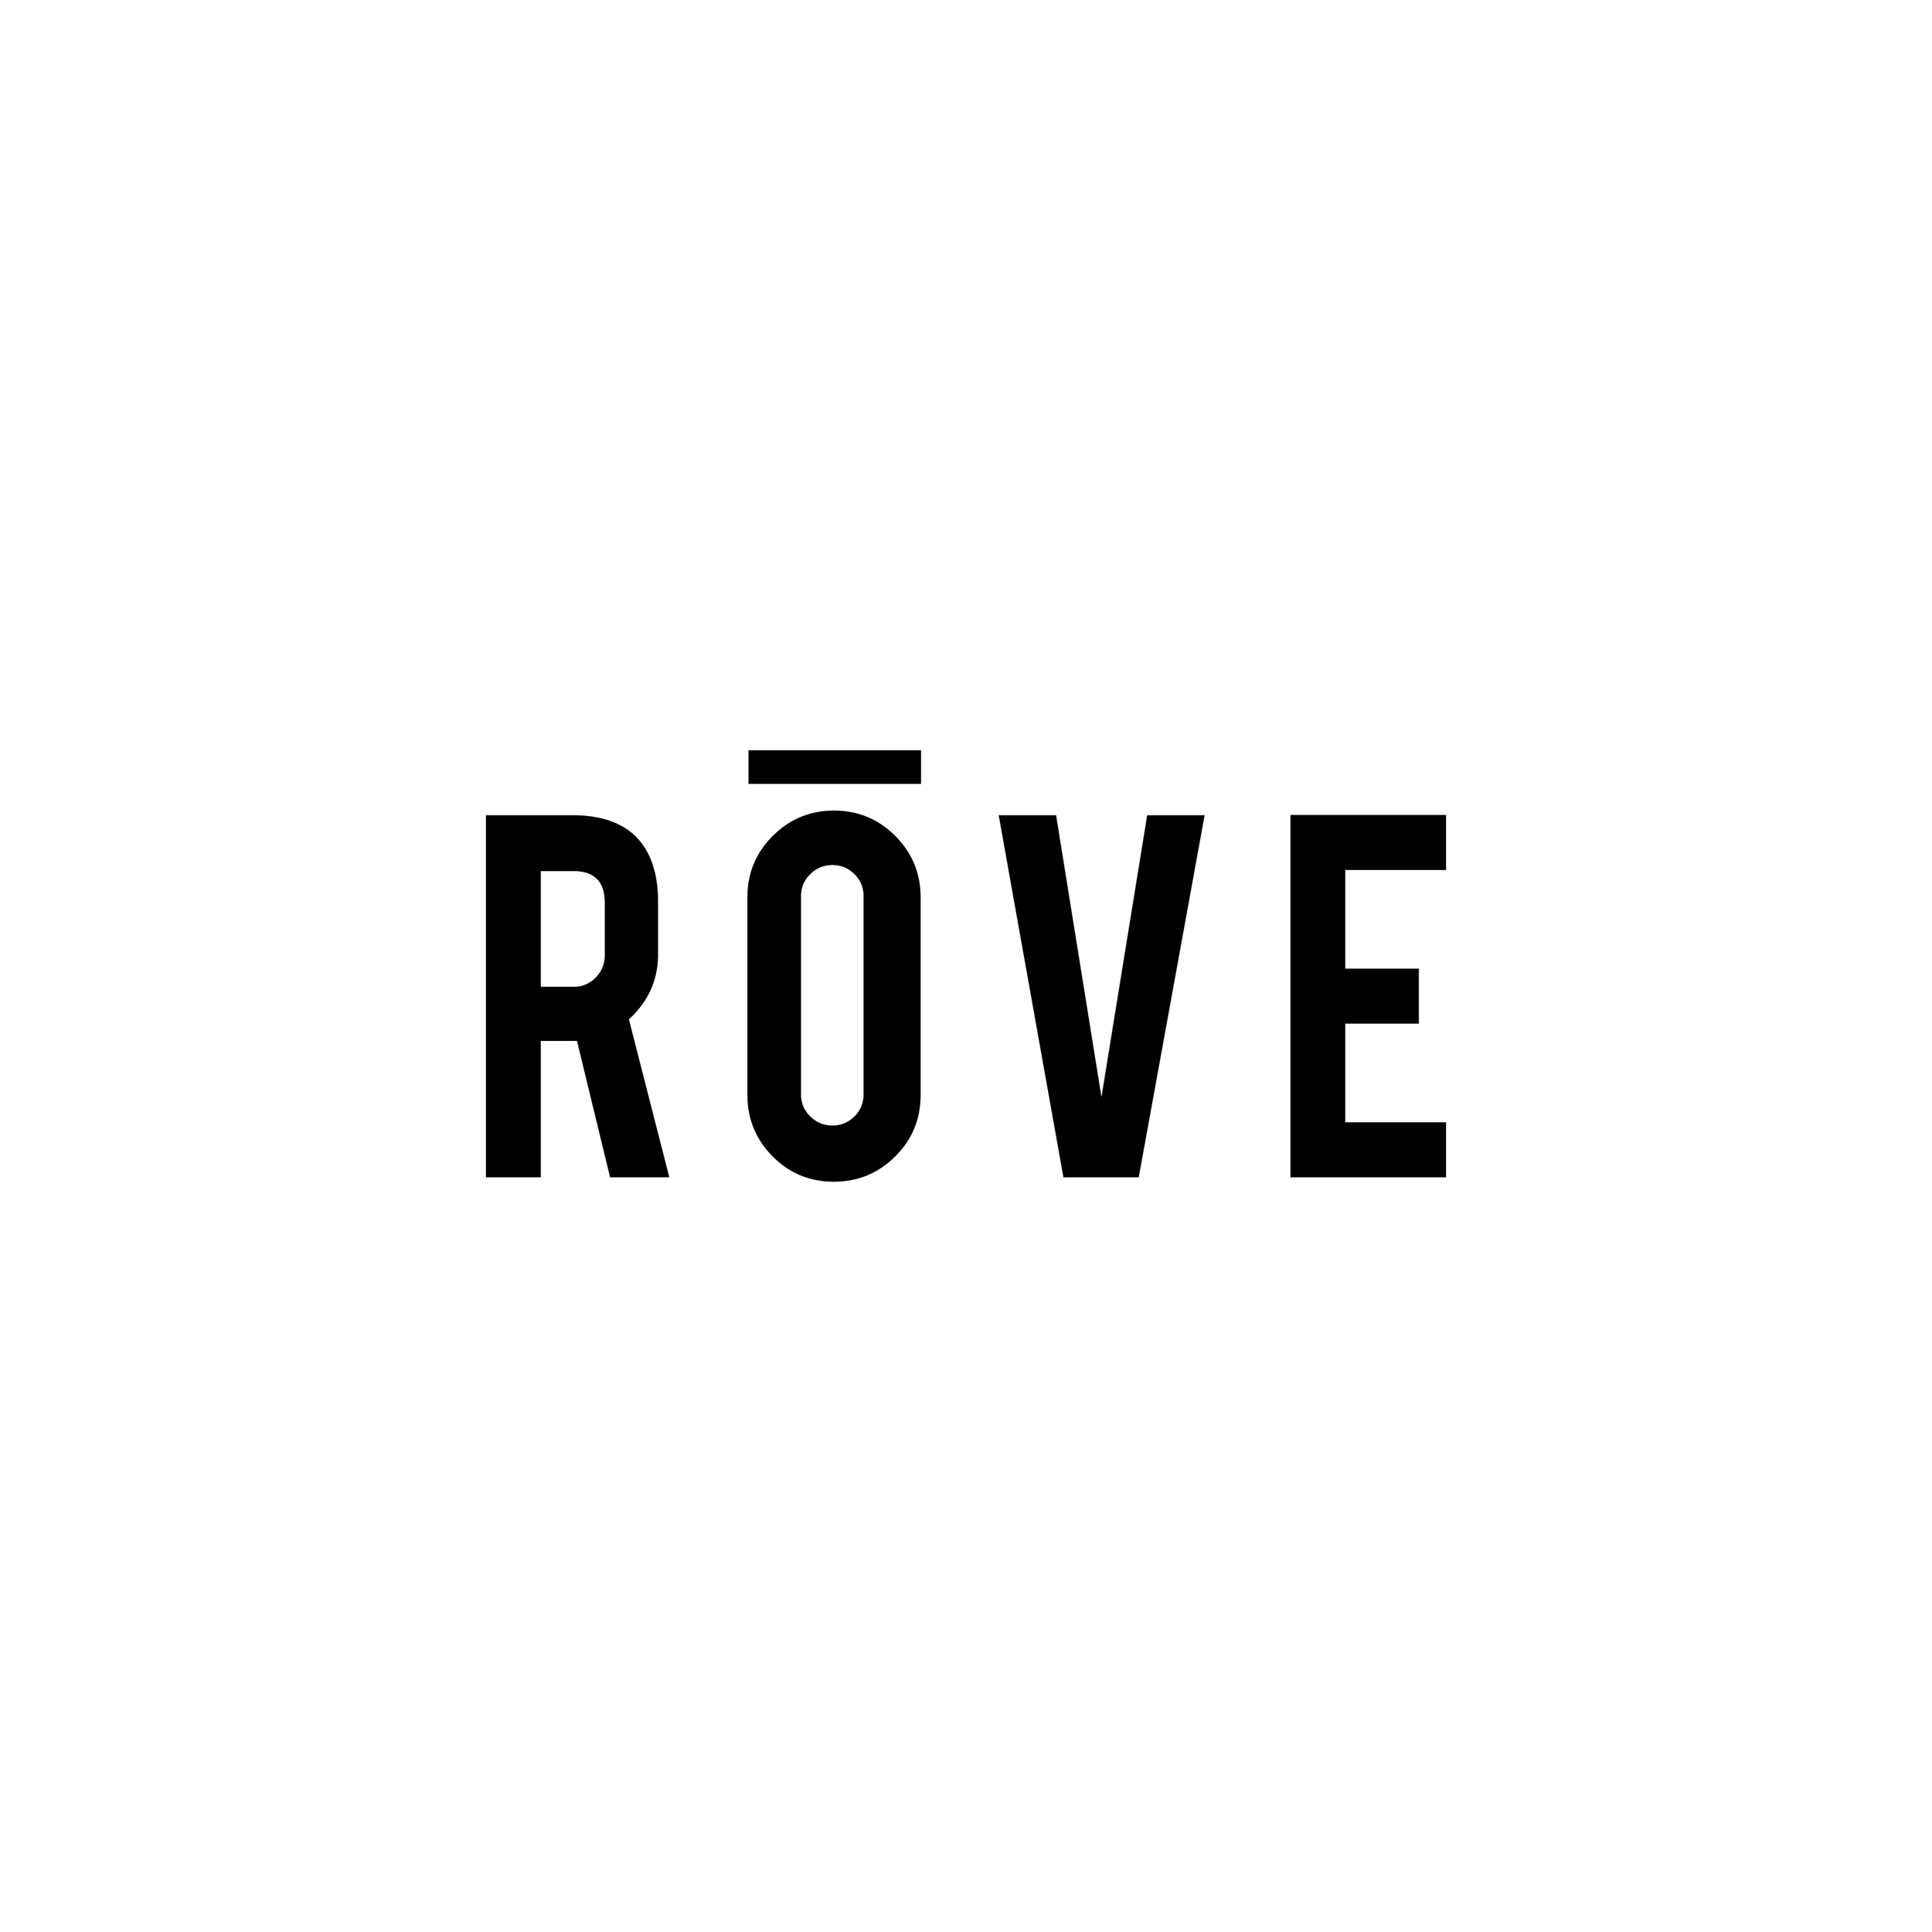 ROVE_LogtypeSolo_vF-01.png